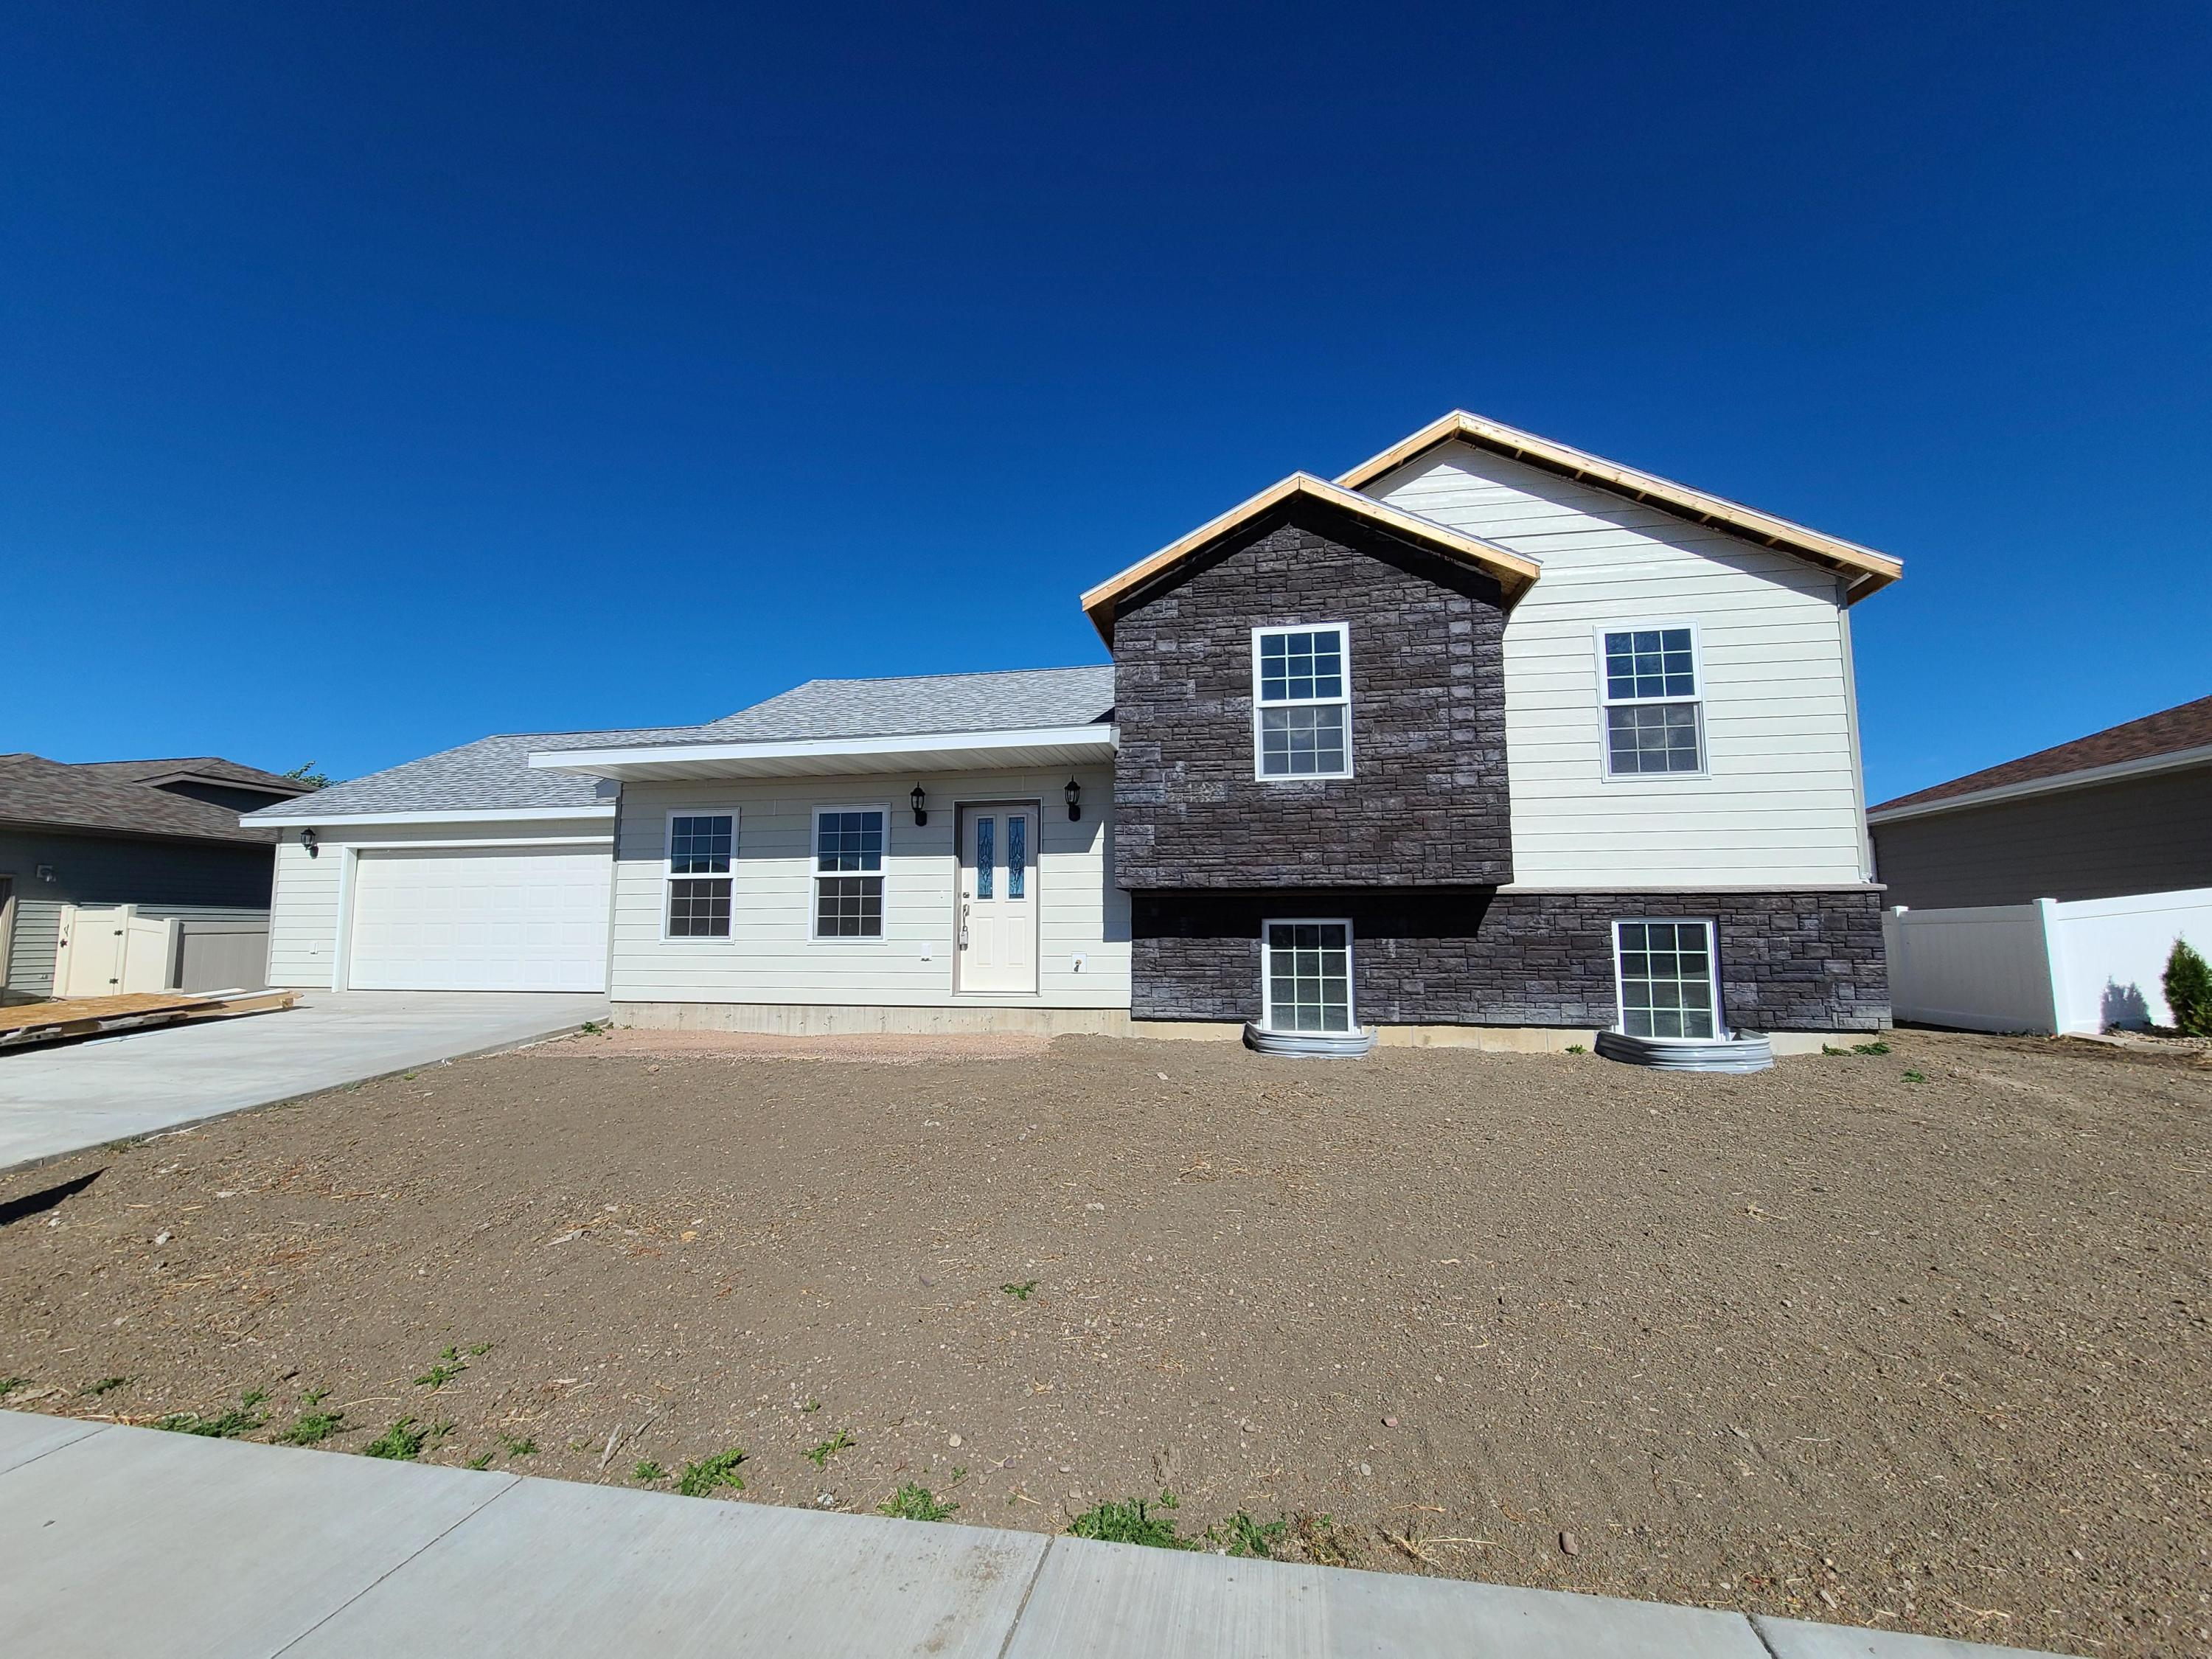 New Construction in wonderful quiet neighborhood.  Open layout  with kitchen island, slider to back yard and nice sized bedrooms.  3 bedrooms on one level. Vinyl fenced backyard. Live in the best neighborhood in Great Falls! Built with quality workmanship and highly engineered foundation.